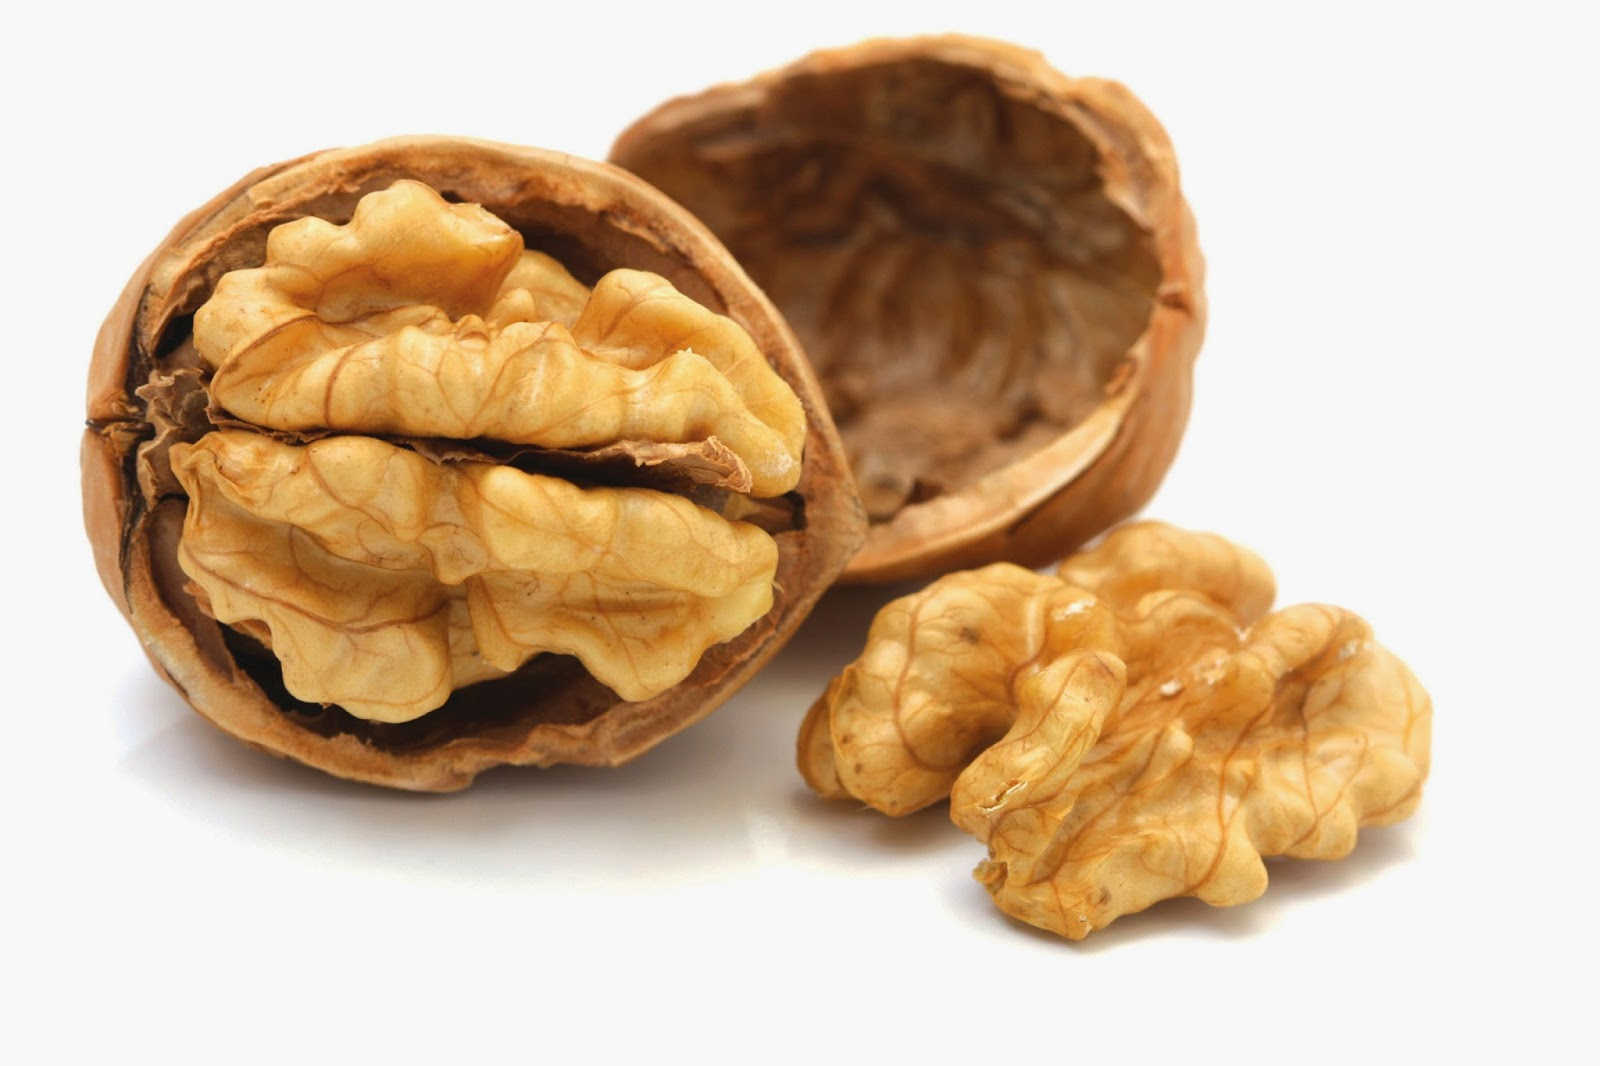 Walnuts (The Source of Good Fat for Healthy Heart)